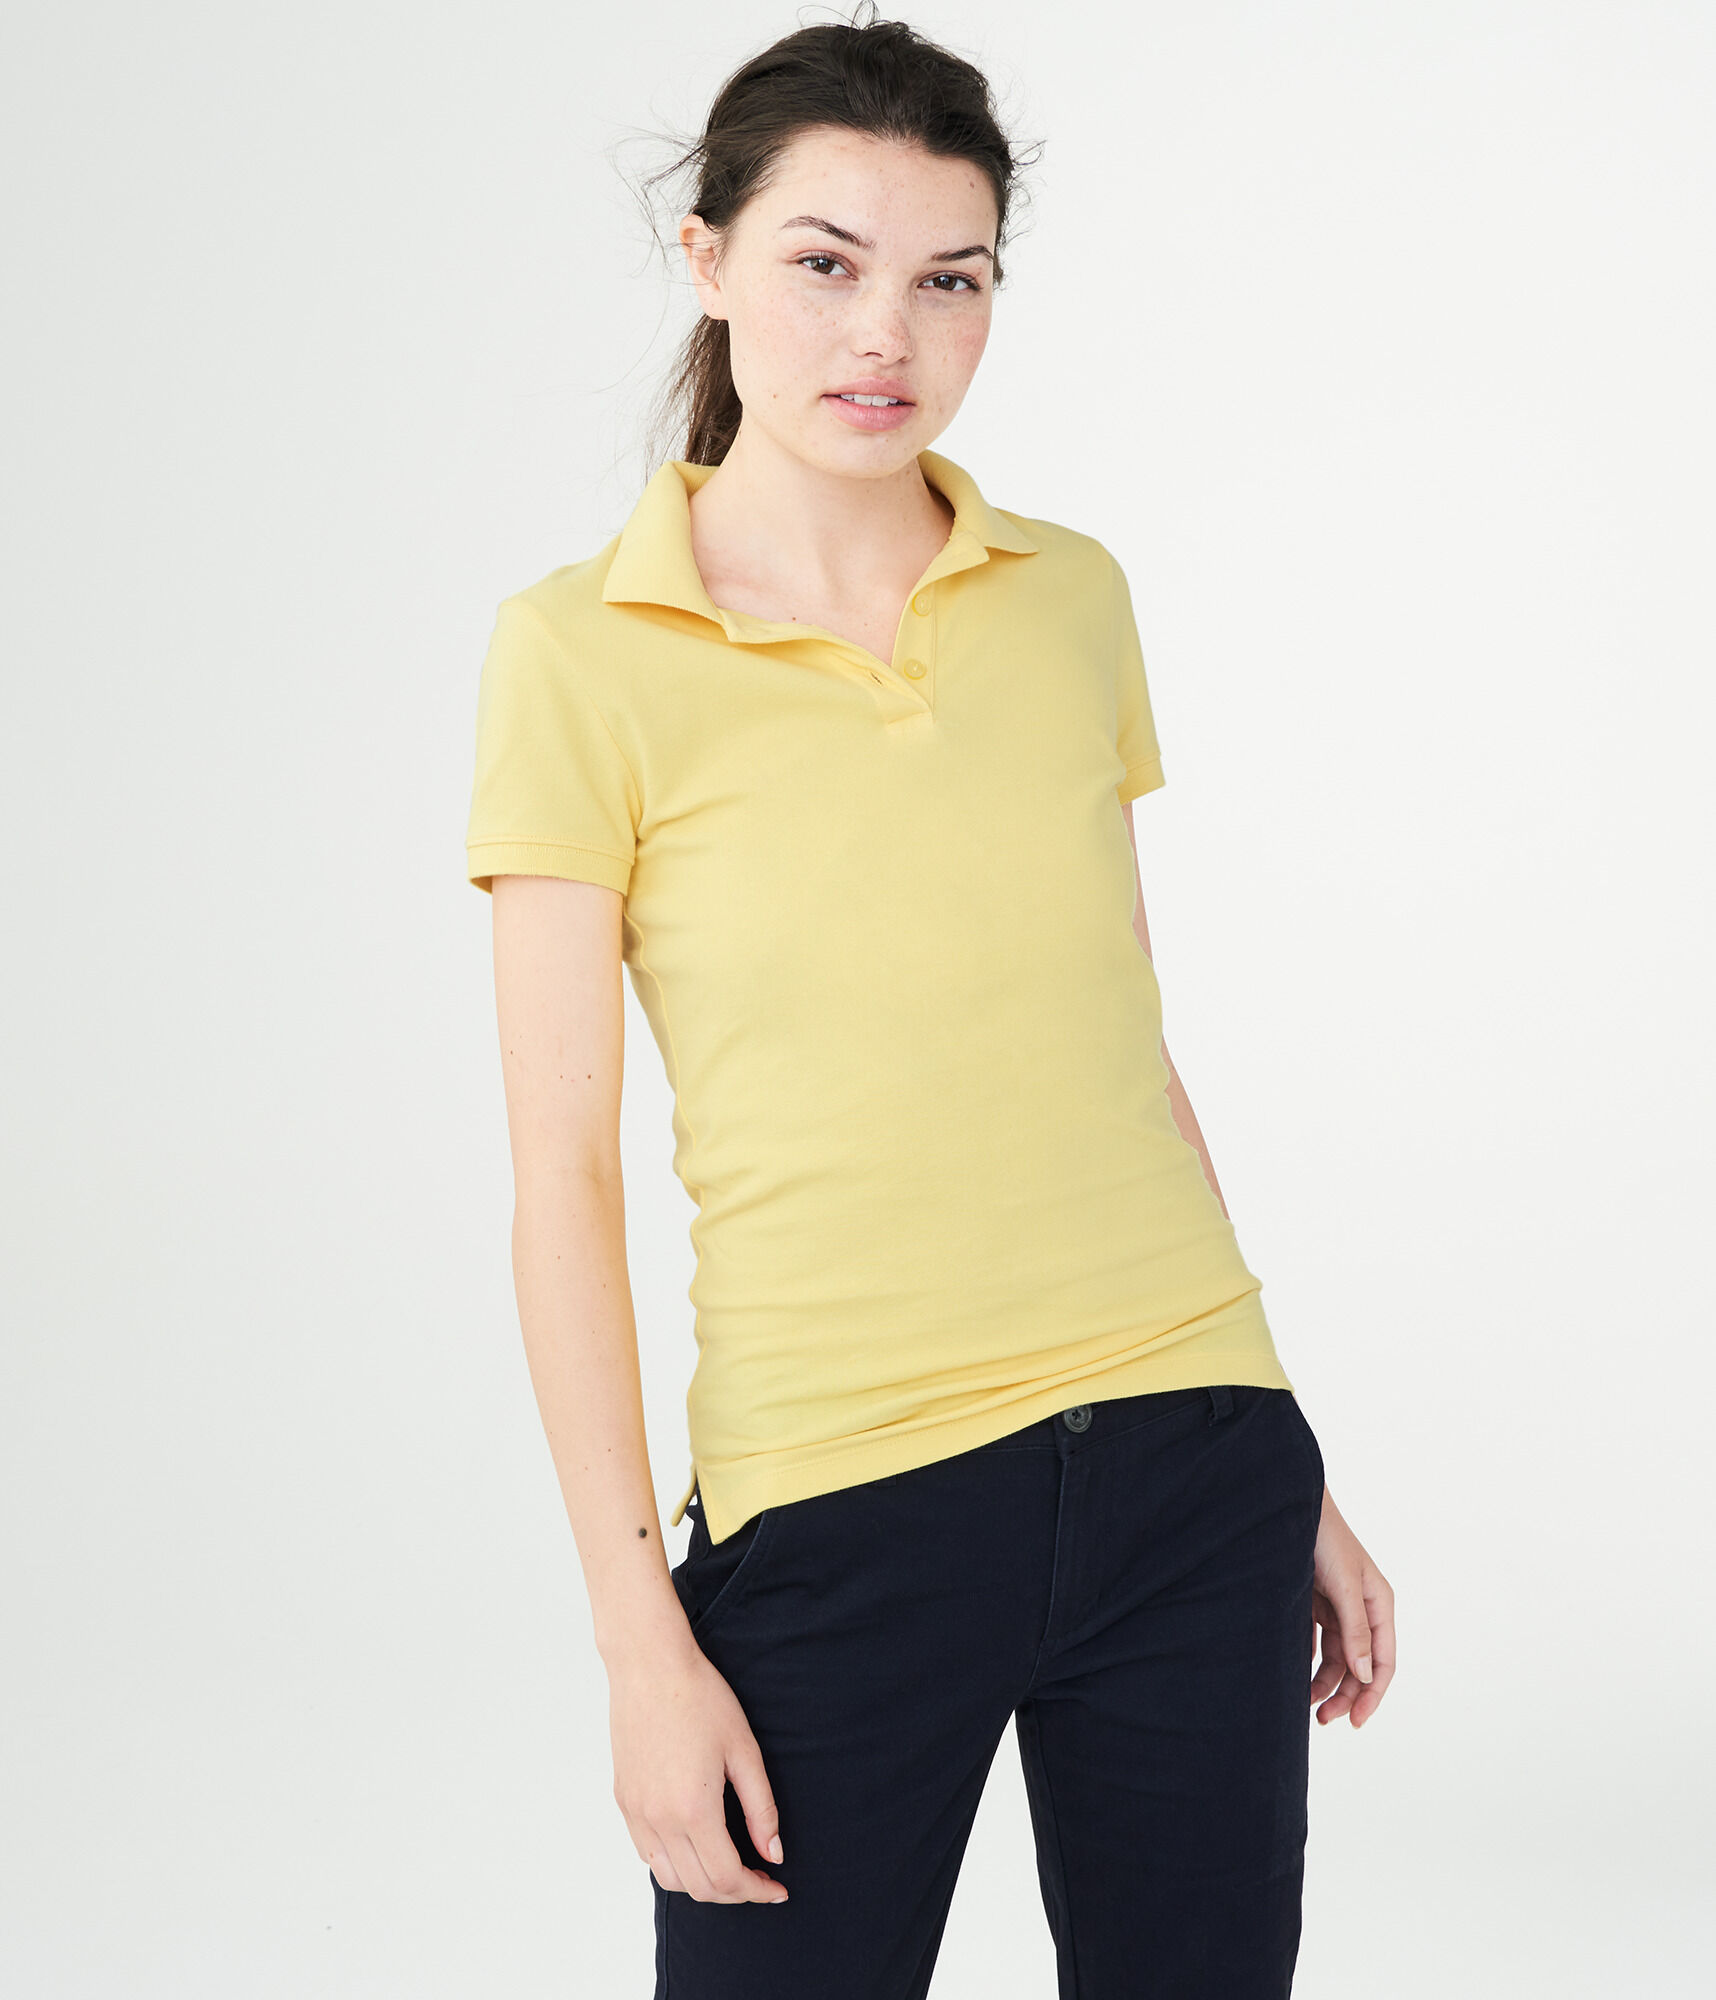 Womens Solid Uniform Pique Polo Aeropostale